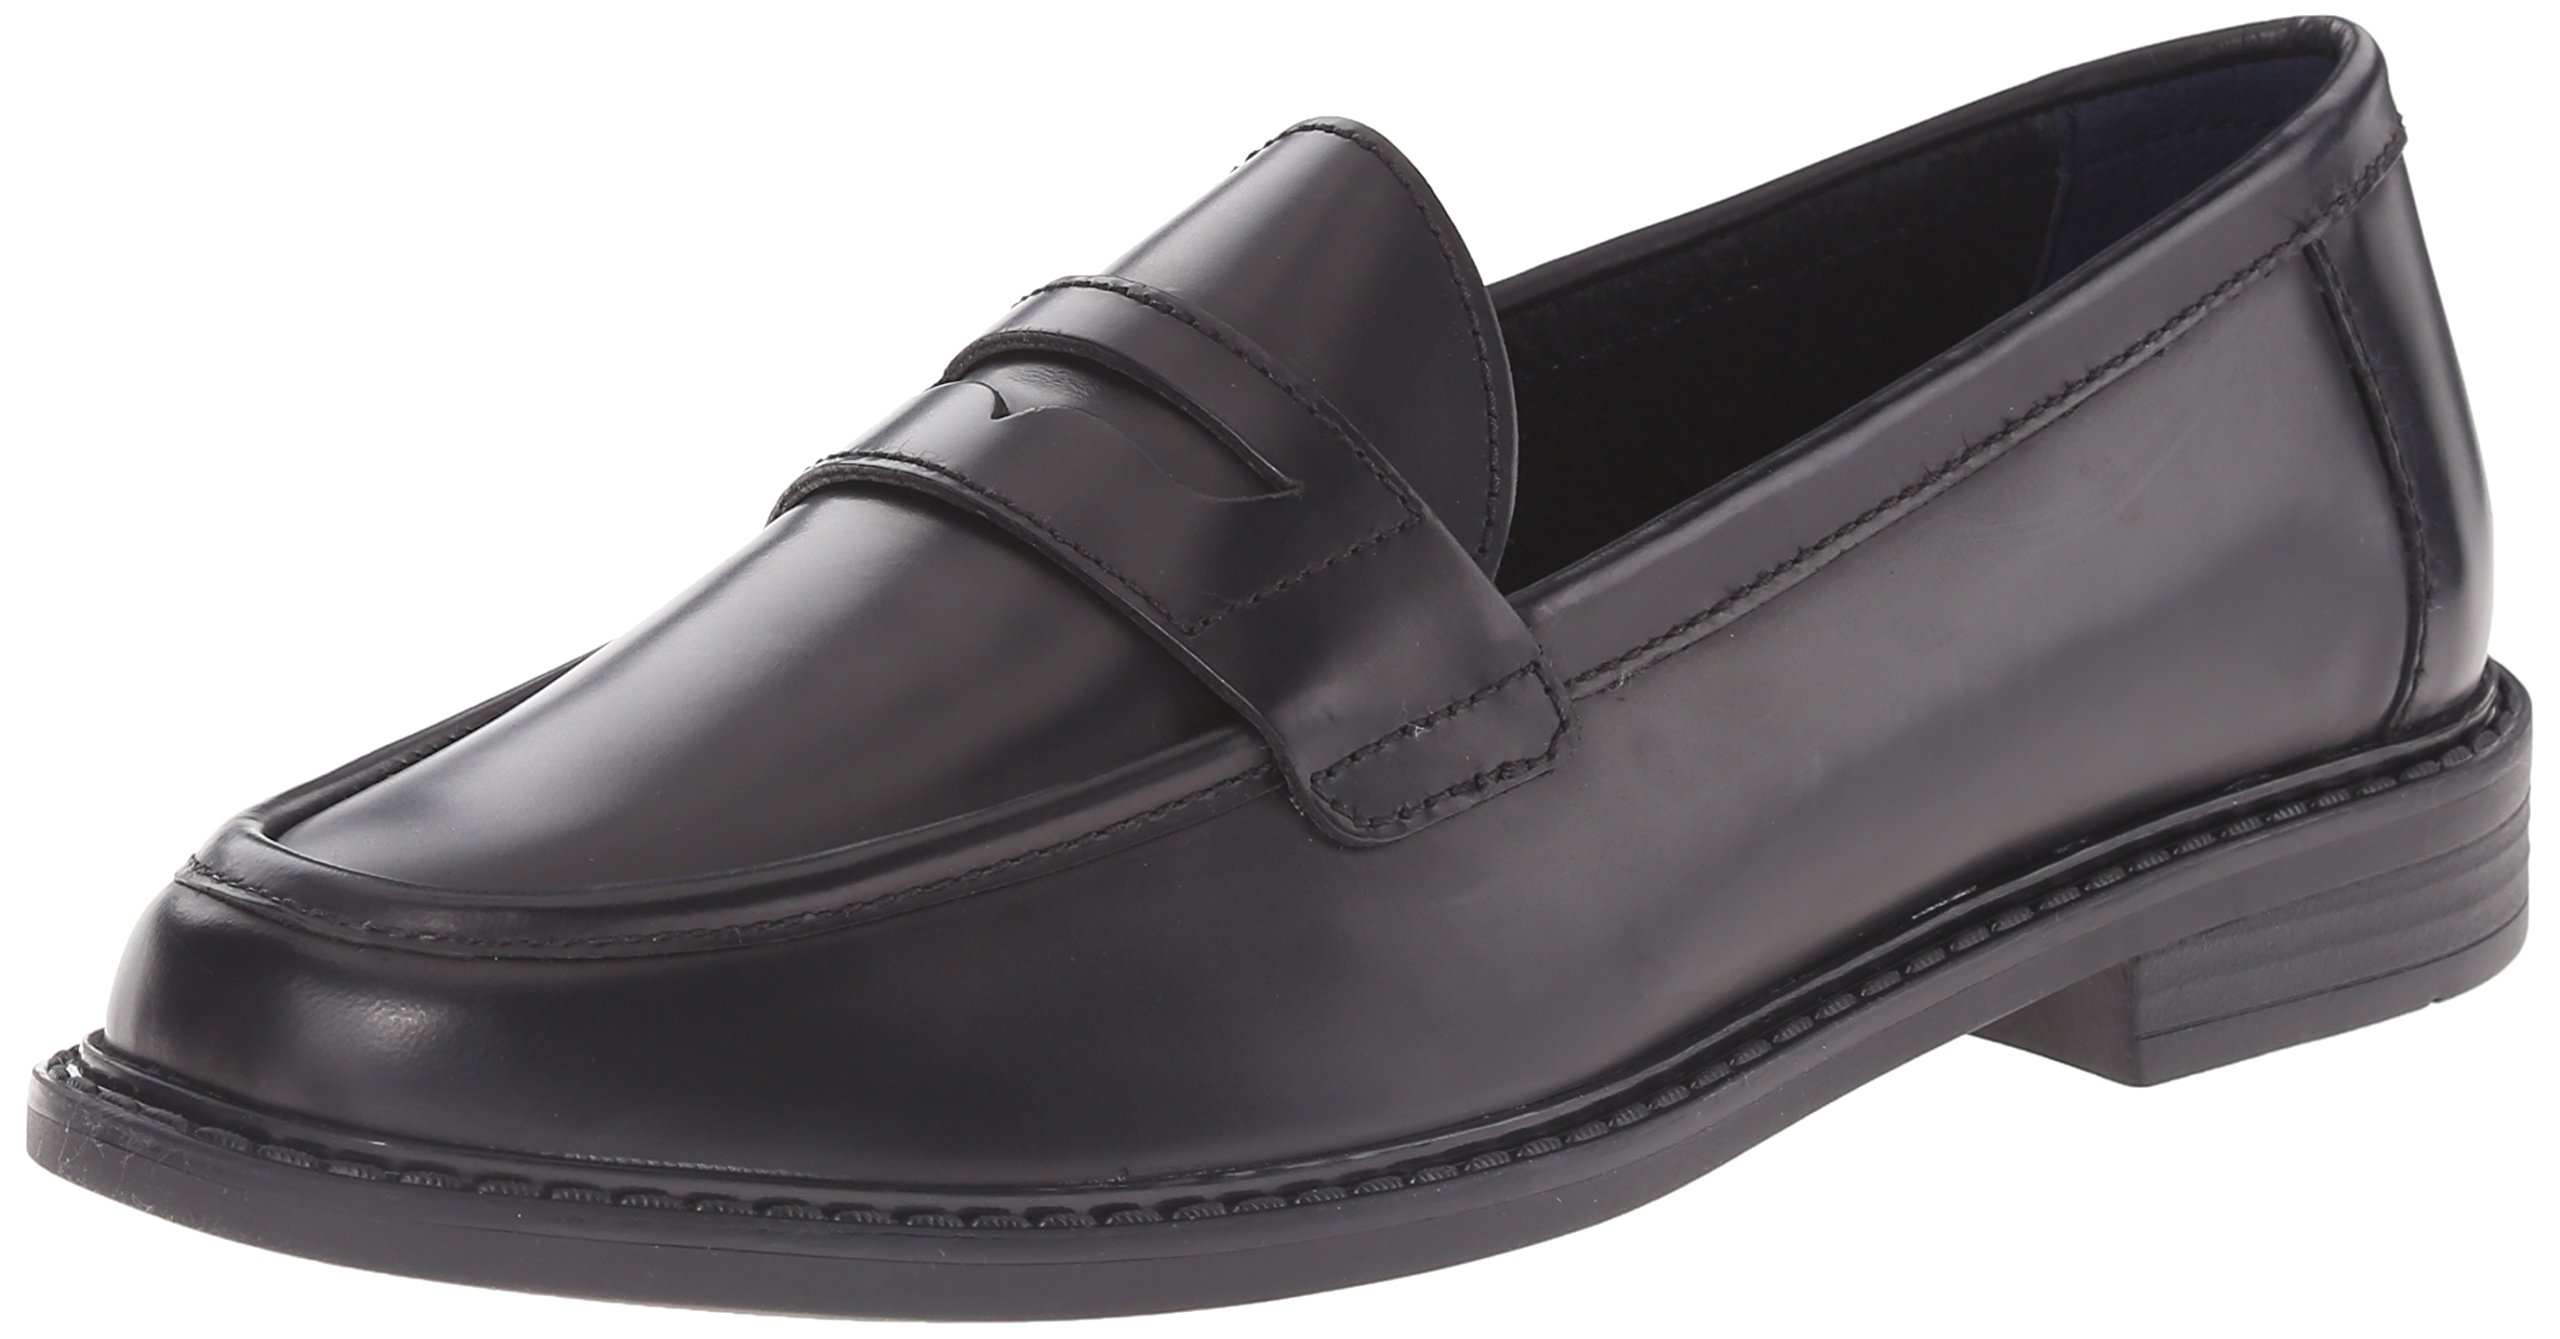 Cole Haan Women's Pinch Campus Penny Loafer, Black, 6.5 B US